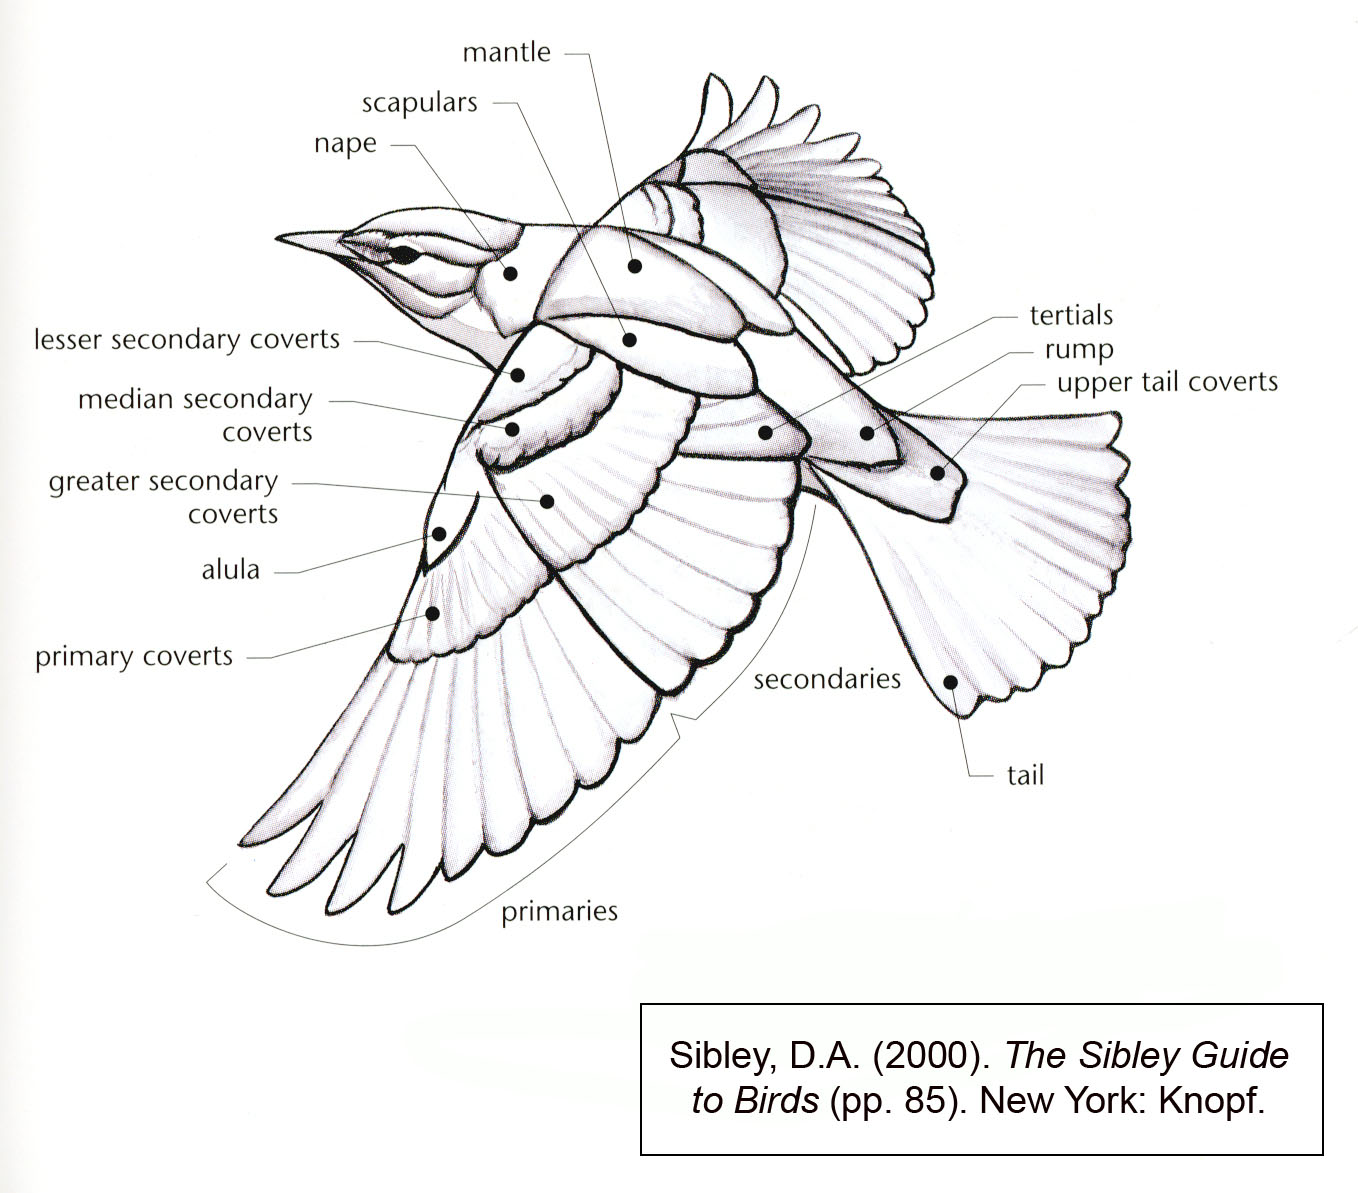 Anatomy of a birds wing, showing different feather groups.